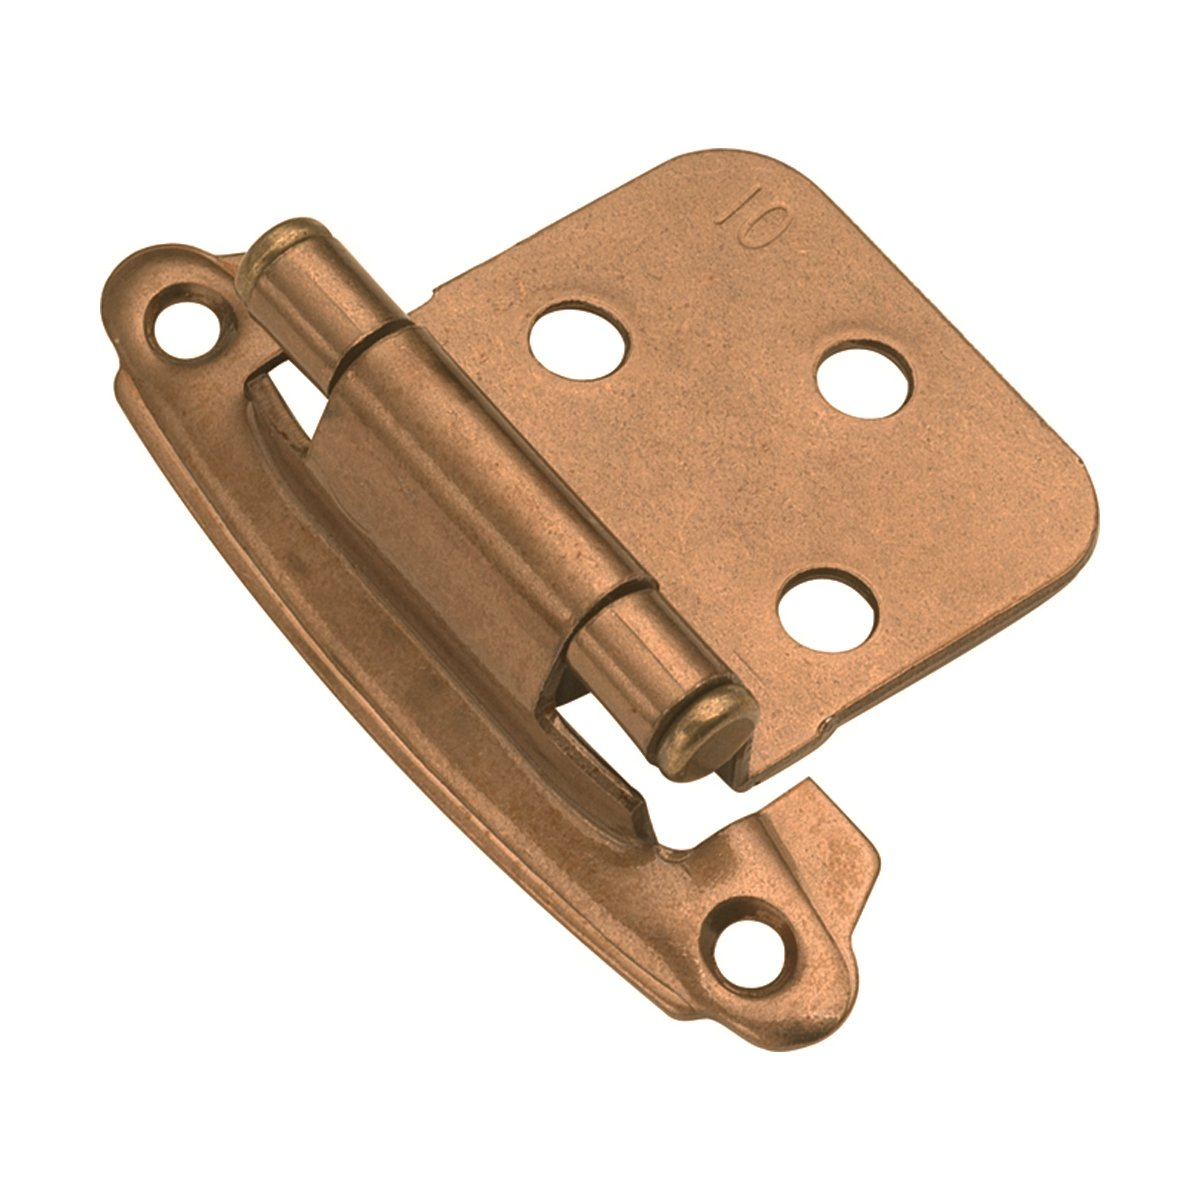 Hickory Hardware P244-SN 3/8-Inch Offset Surface Self-Closing ...